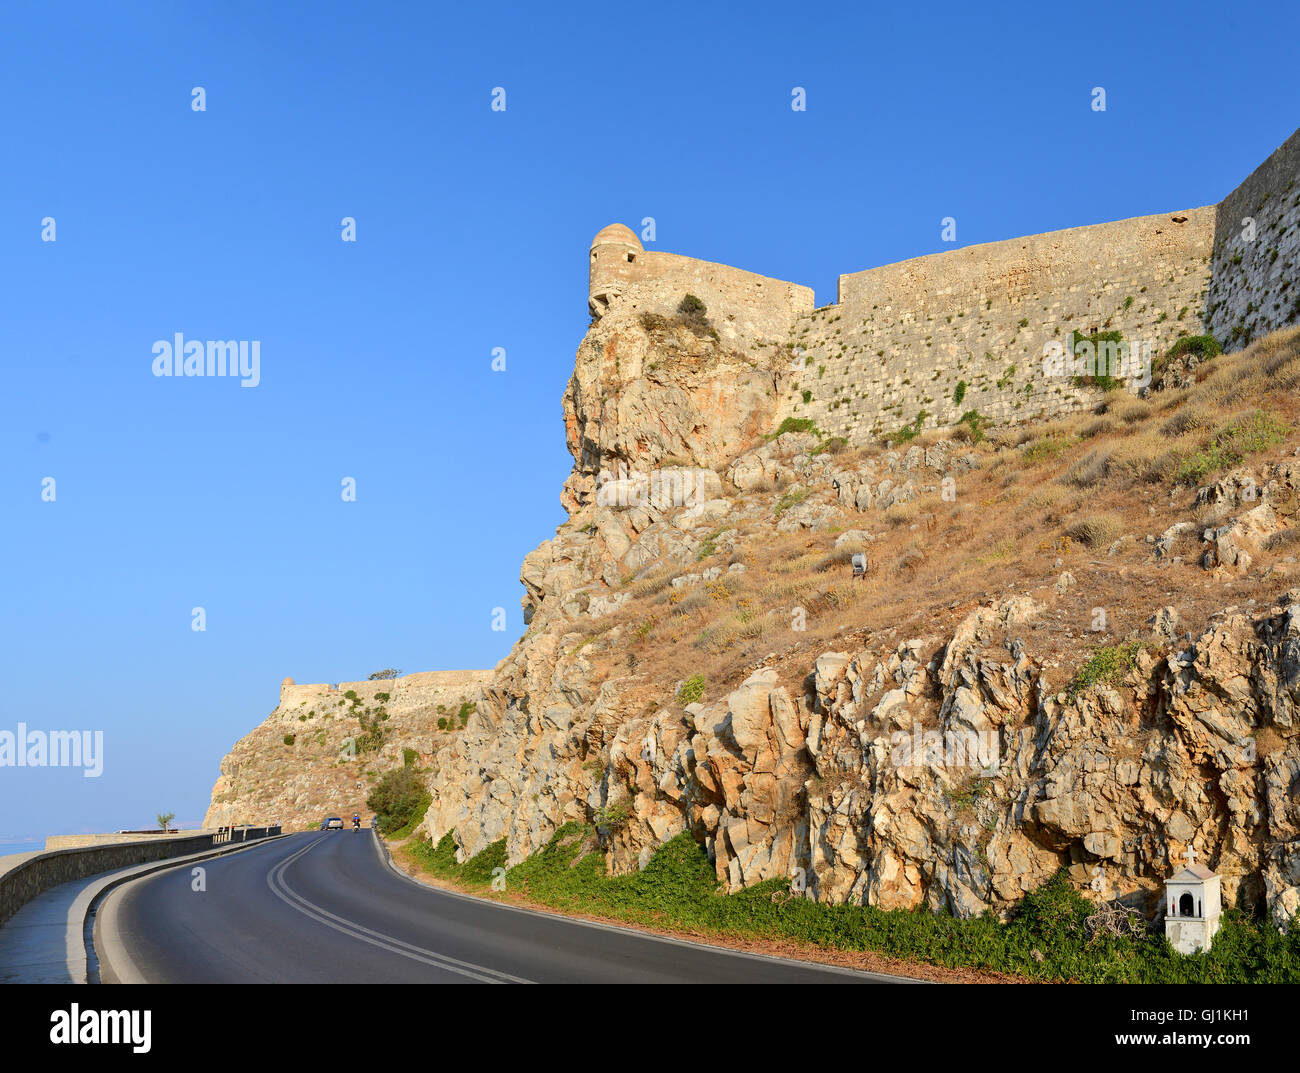 Rethymno city Greece Fortezza fortress landmark architecture Stock Photo